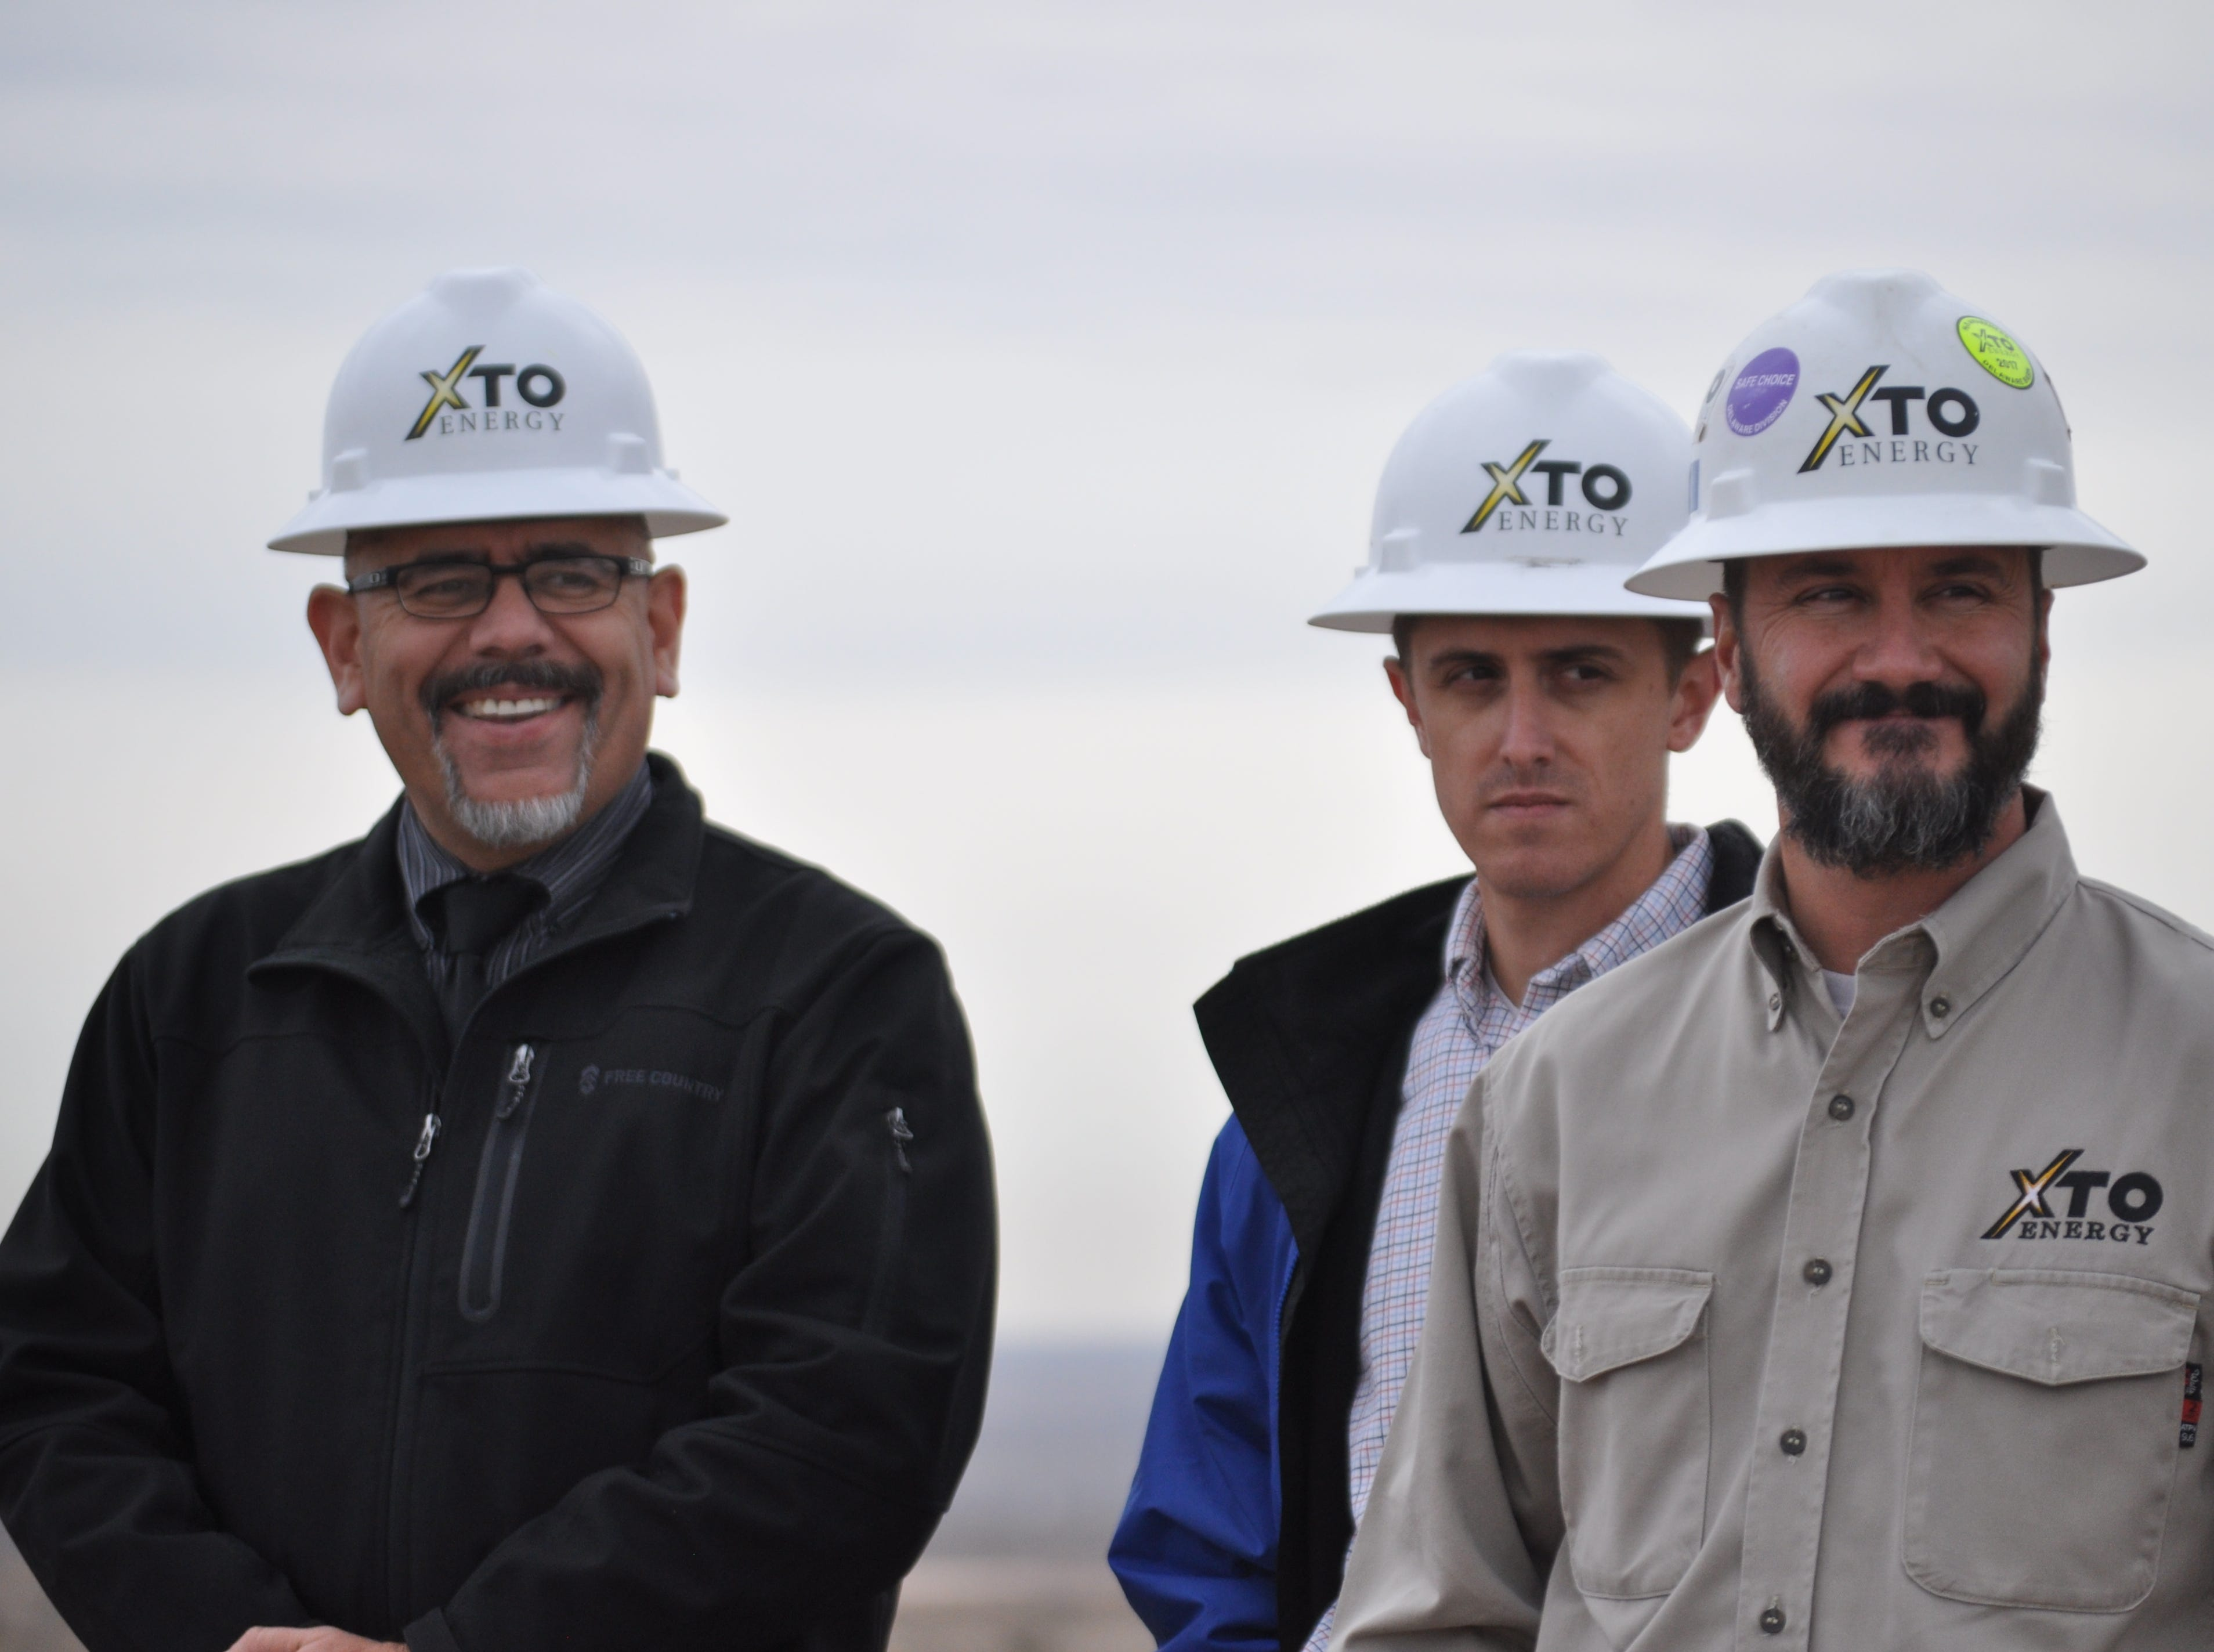 Carlsbad City Manager Mike Hernandez and Wes McSpadden, XTO Delaware Basin Production Superintendent Dec. 17 ahead of the ground breaking on a $12 million investment by the city and XTO Energy to build at 5 million gallon water tank and disinfection facility near Carlsbad, New Mexico.